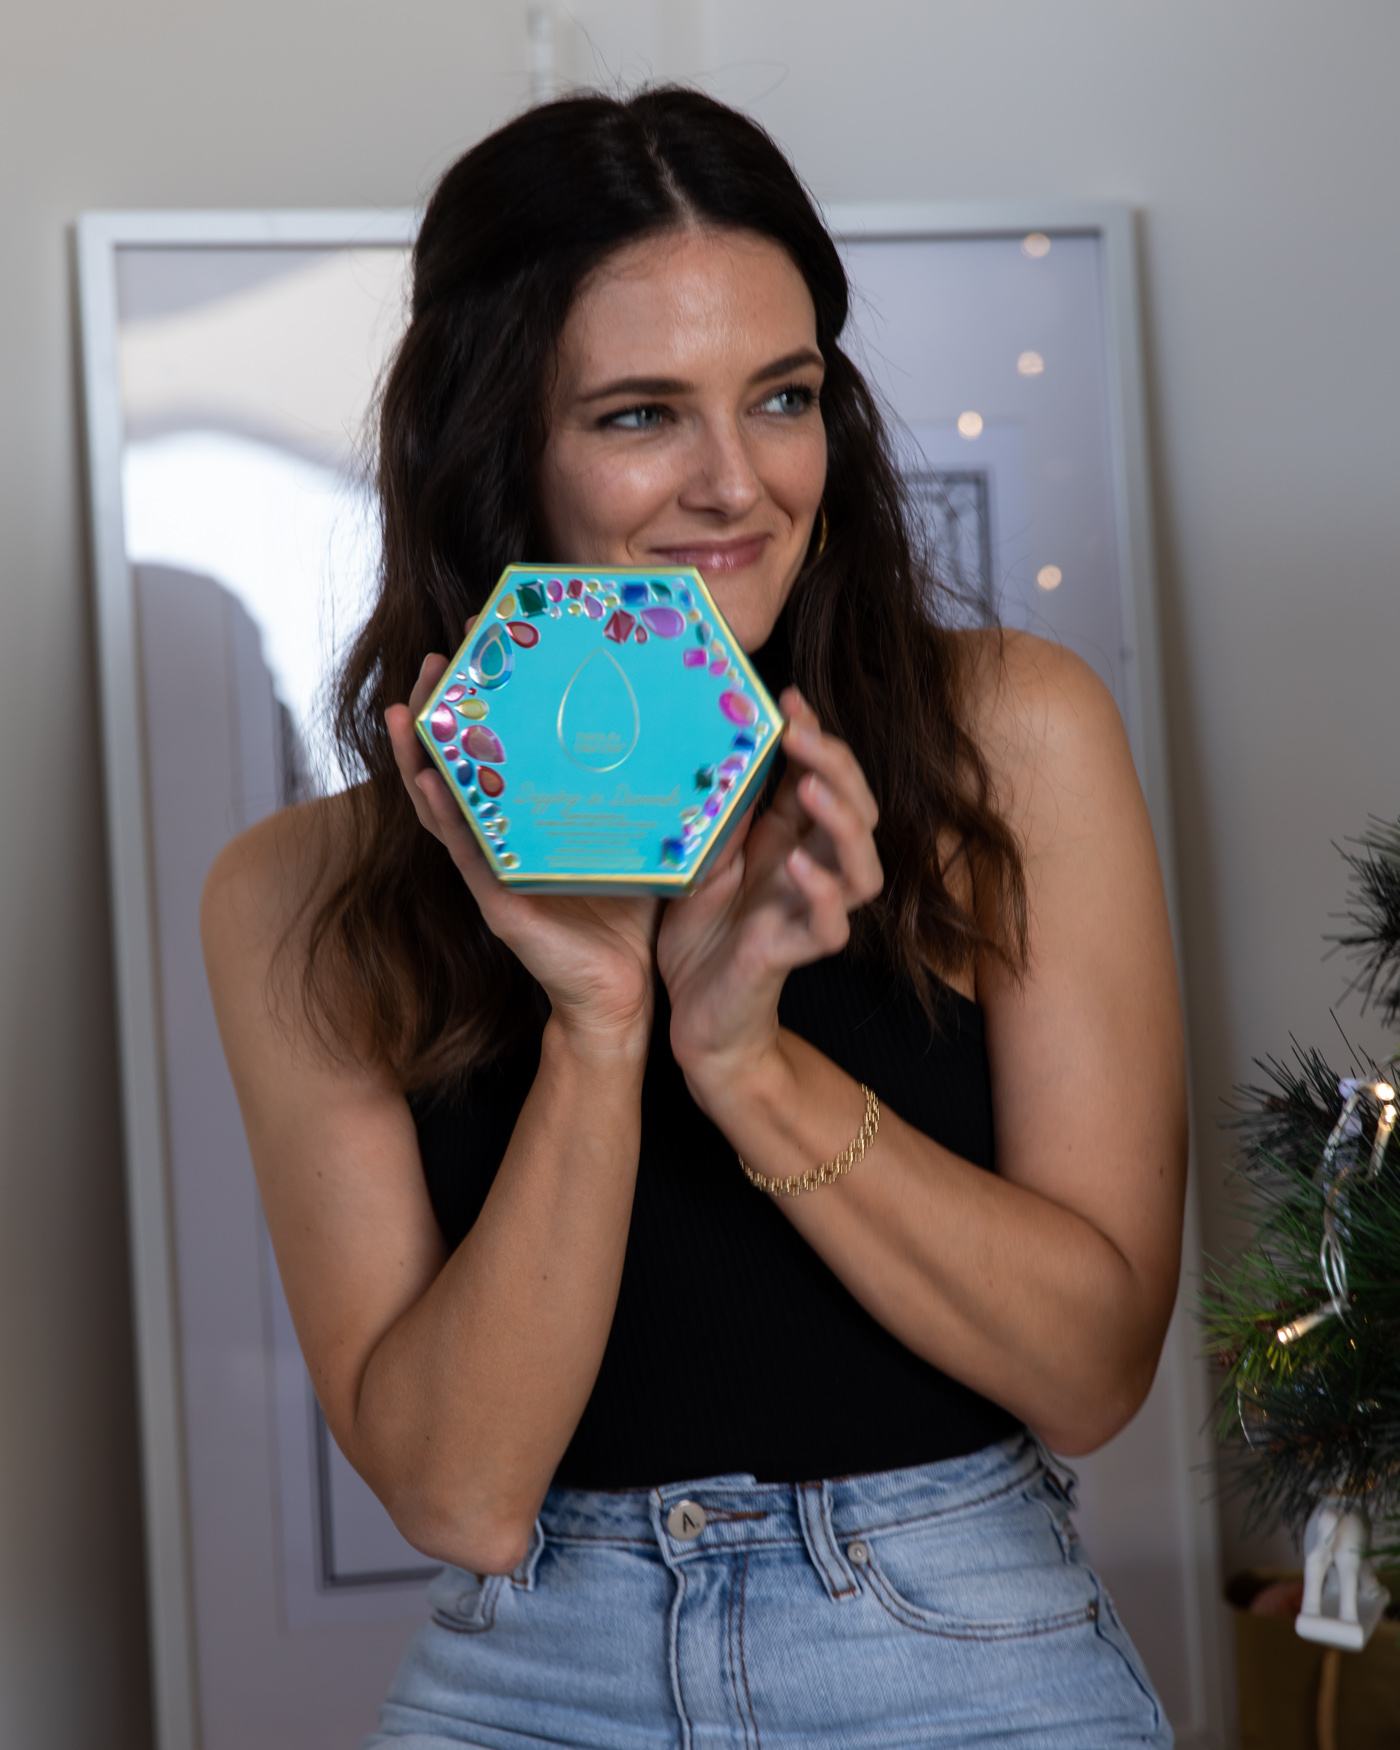 The Ultimate Beauty Christmas gift guide with Jenelle Witty from Inspiring Wit